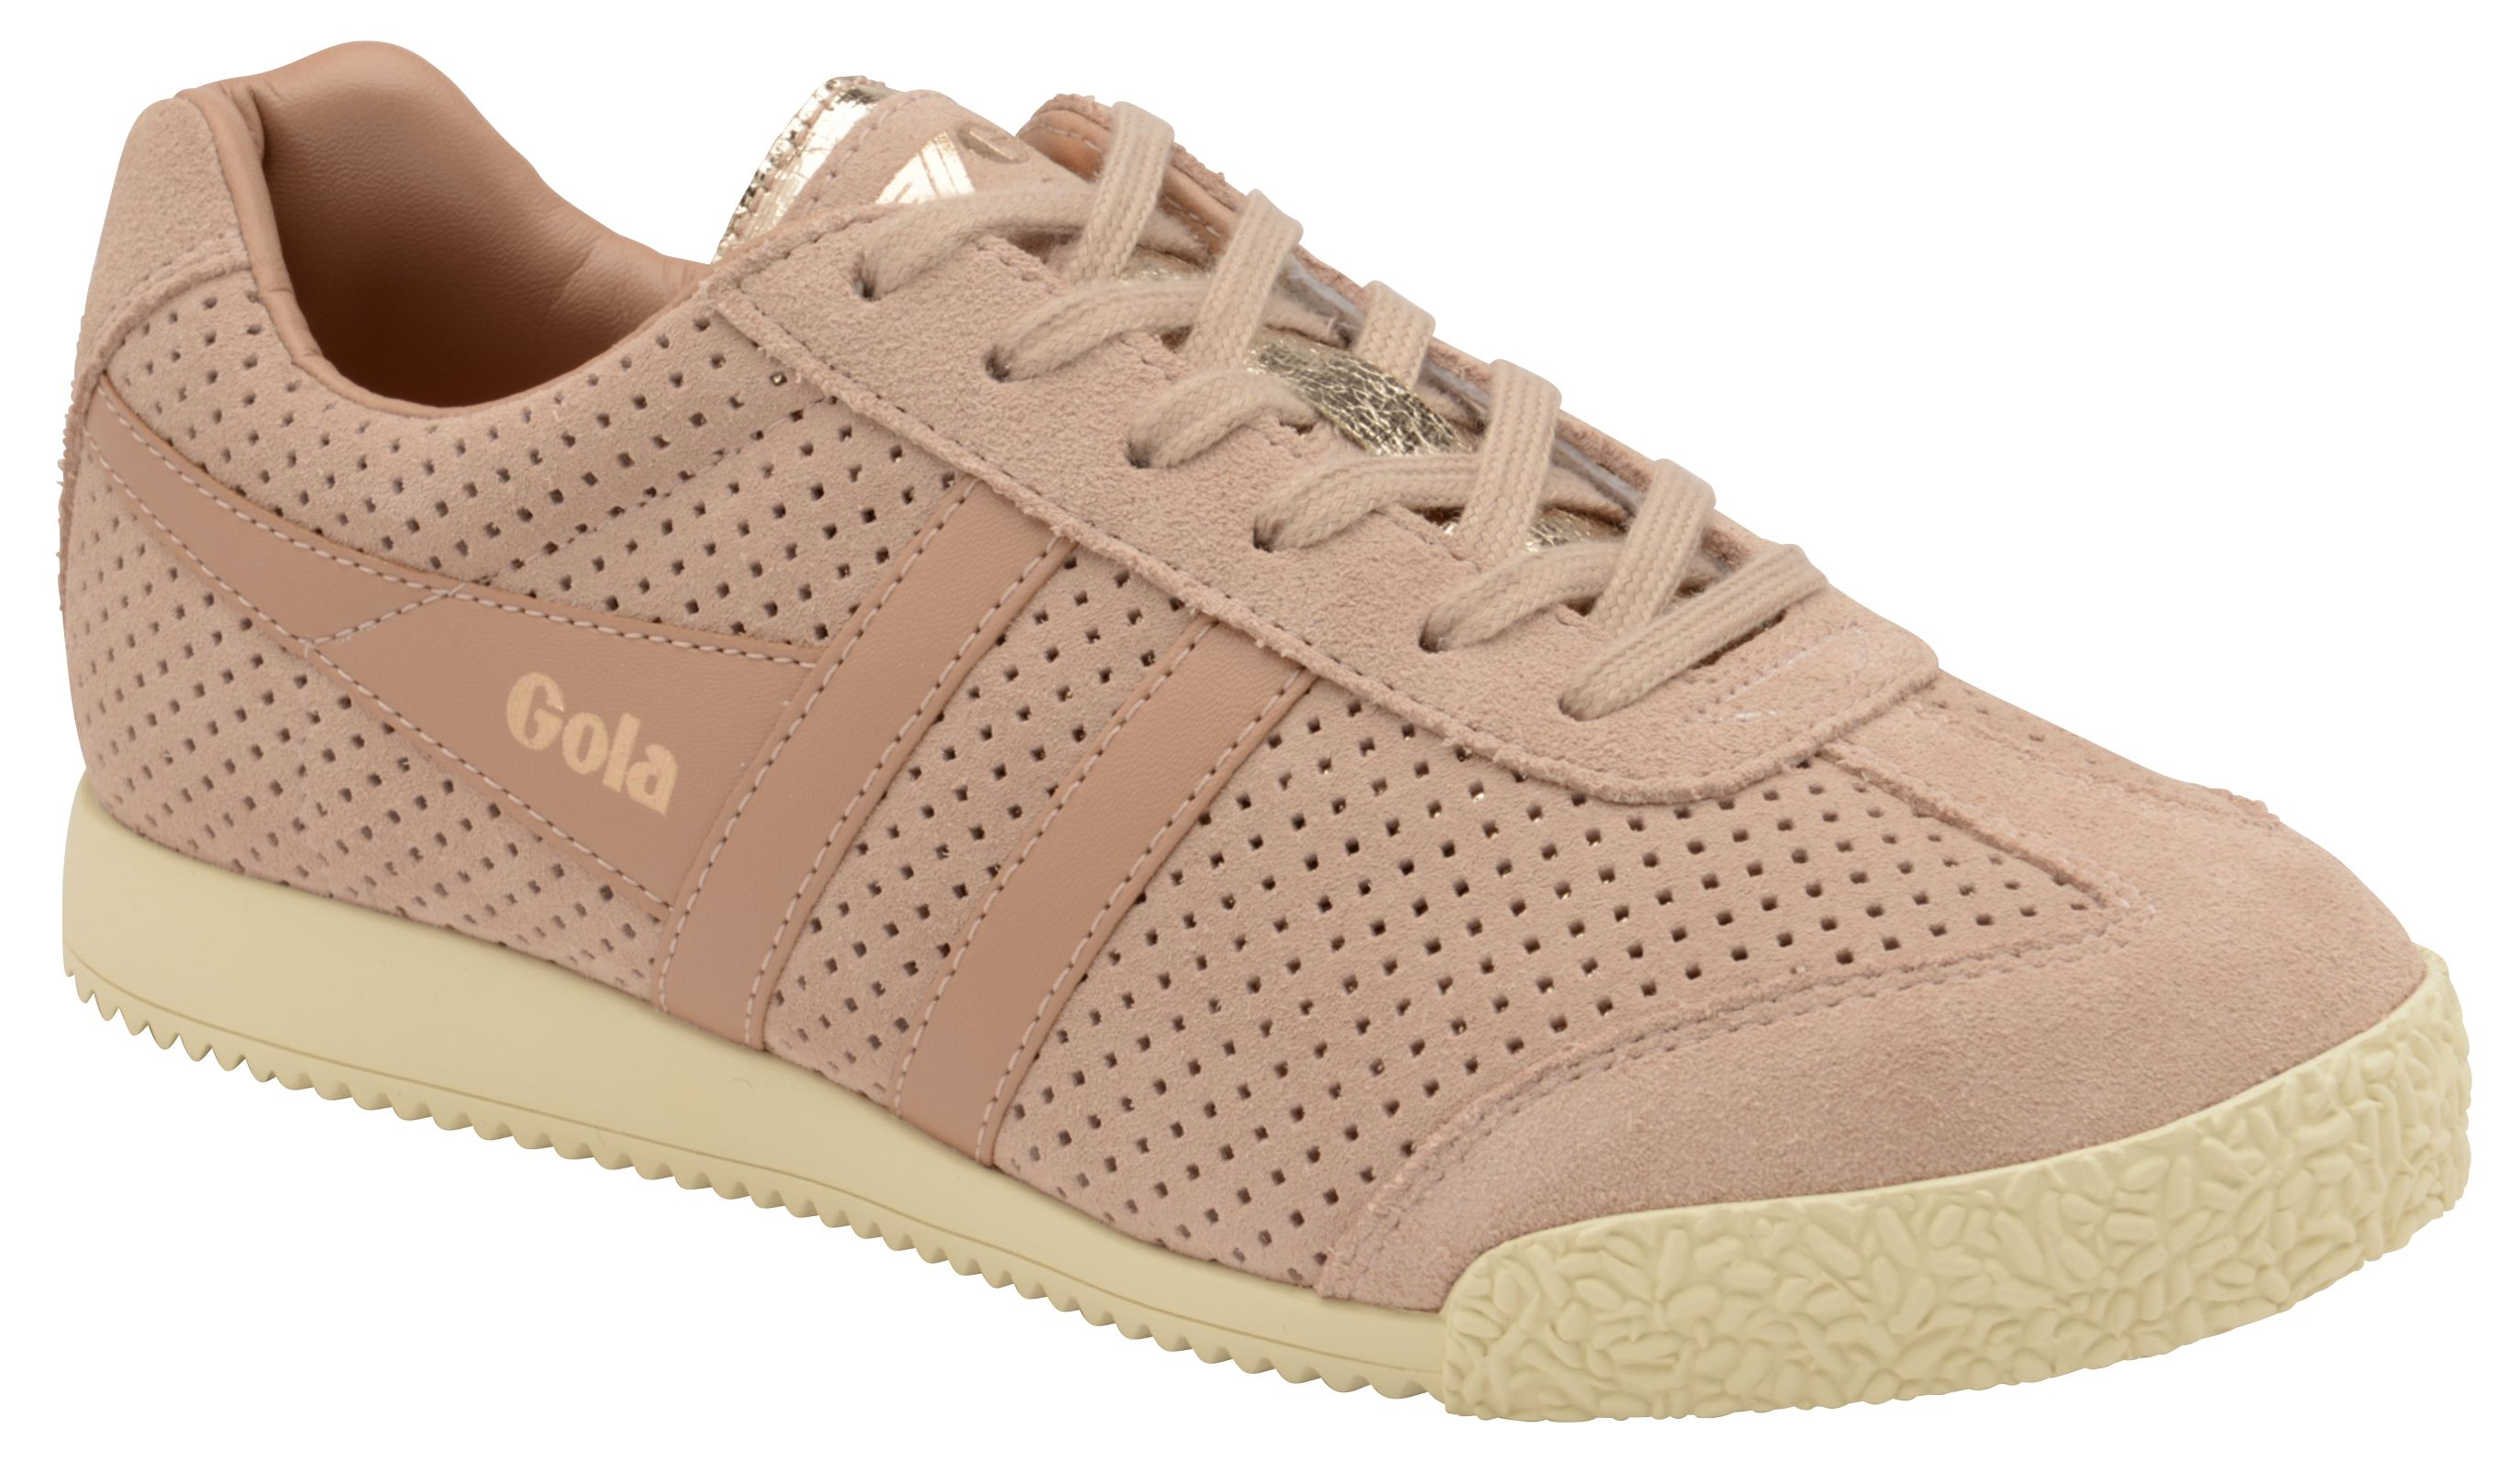 Gola Harrier Glimmer Suede Trainers, Pink